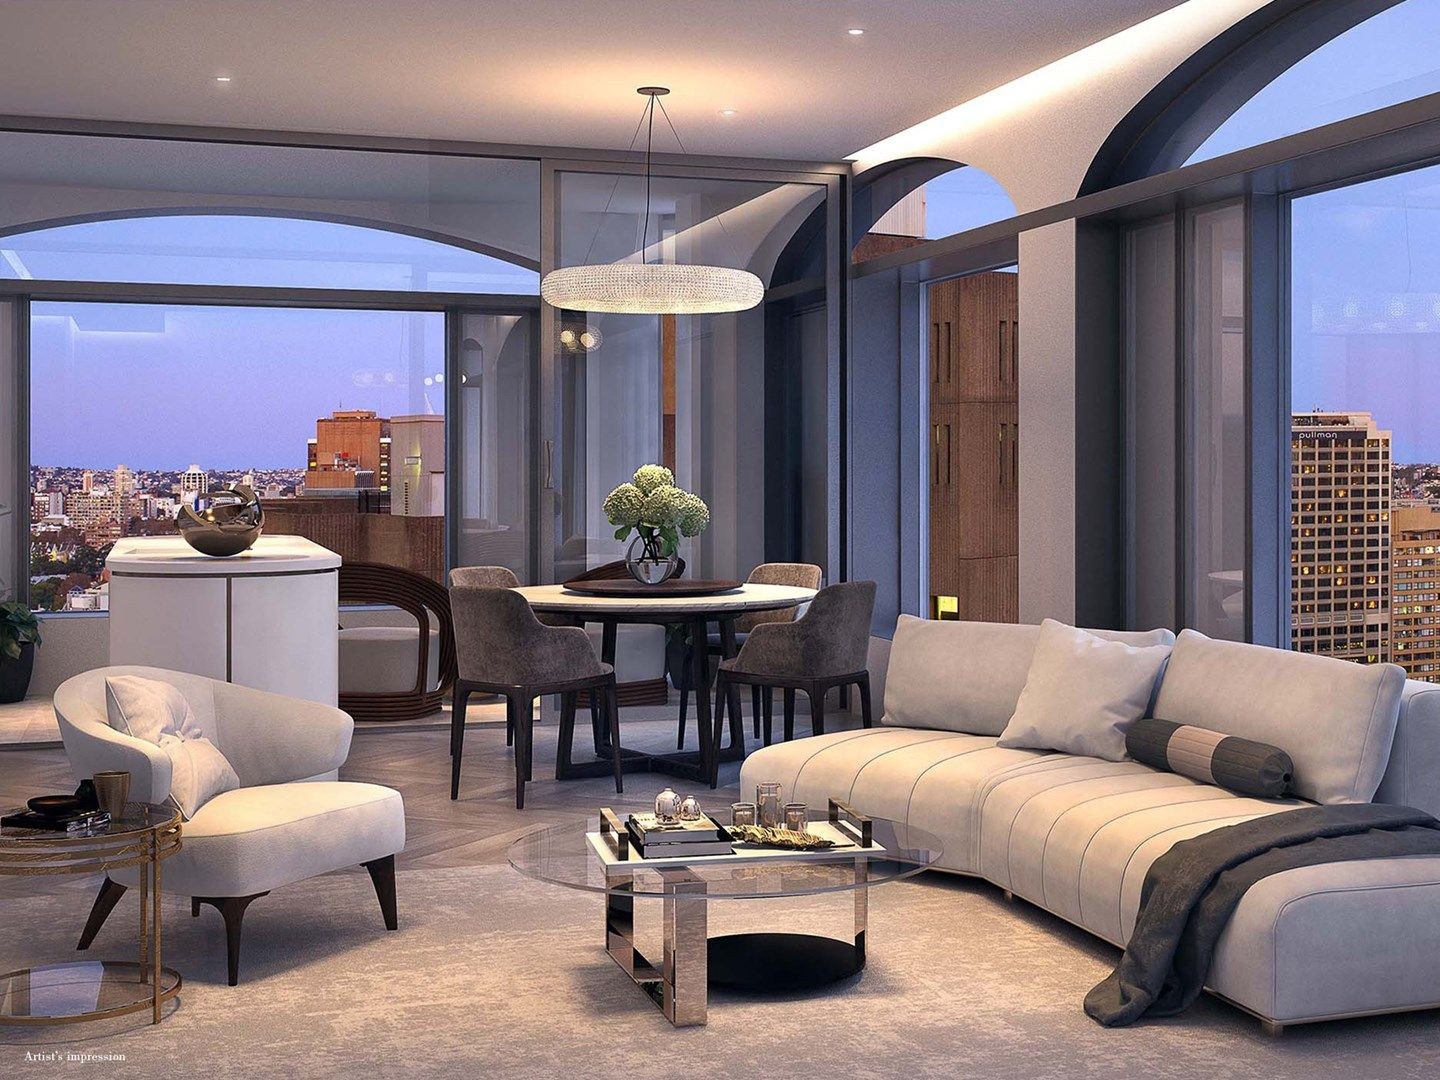 2 bedrooms New Apartments / Off the Plan in 203 Castlereagh St SYDNEY NSW, 2000